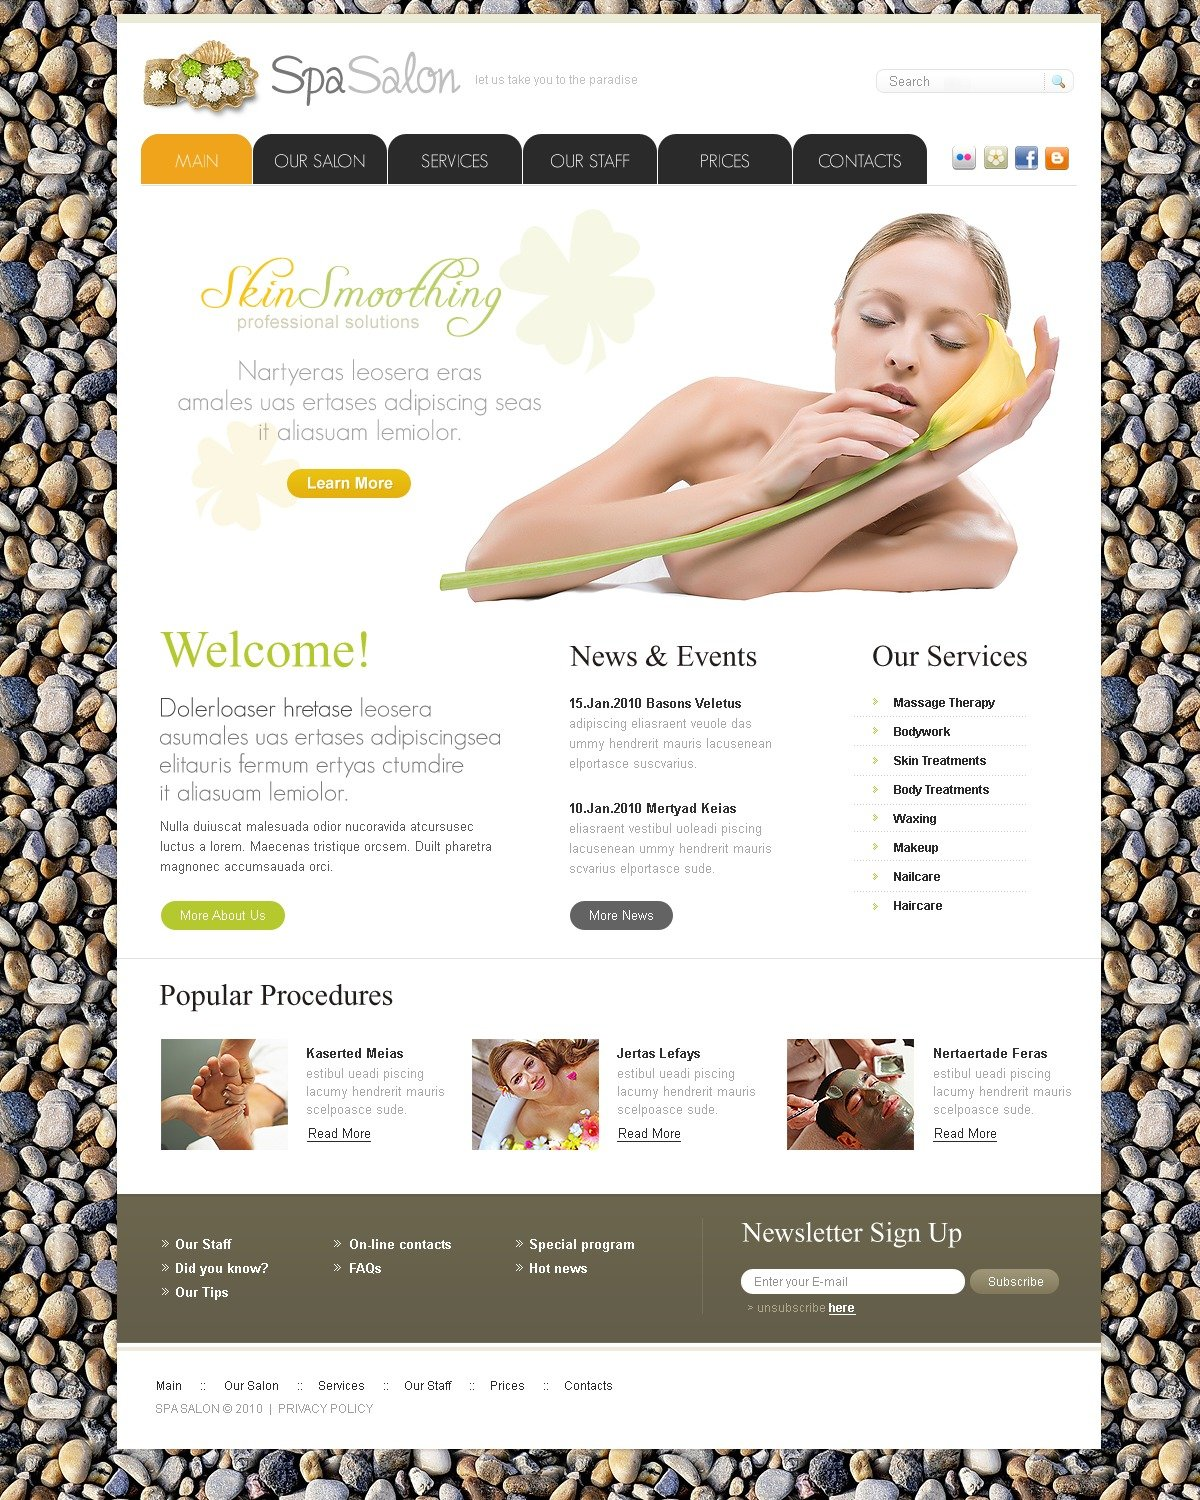 The SPA Salon Beauty PSD Design 54242, one of the best PSD templates of its kind (beauty, flash 8, wide), also known as SPA salon beauty PSD template, cosmetic PSD template, weight loss PSD template, massage PSD template, facial PSD template, body PSD template, style PSD template, product PSD template, staff PSD template, professional PSD template, decorative PSD template, foundation PSD template, cream care PSD template, lipstick PSD template, mascara PSD template, powder PSD template, rouge PSD template, skin PSD template, perfume PSD template, makeup PSD template, education PSD template, consultation PSD template, research PSD template, technology PSD template, special offer PSD template, fashion PSD template, hydrotherapy and related with SPA salon beauty, cosmetic, weight loss, massage, facial, body, style, product, staff, professional, decorative, foundation, cream care, lipstick, mascara, powder, rouge, skin, perfume, makeup, education, consultation, research, technology, special offer, fashion, hydrotherapy, etc.